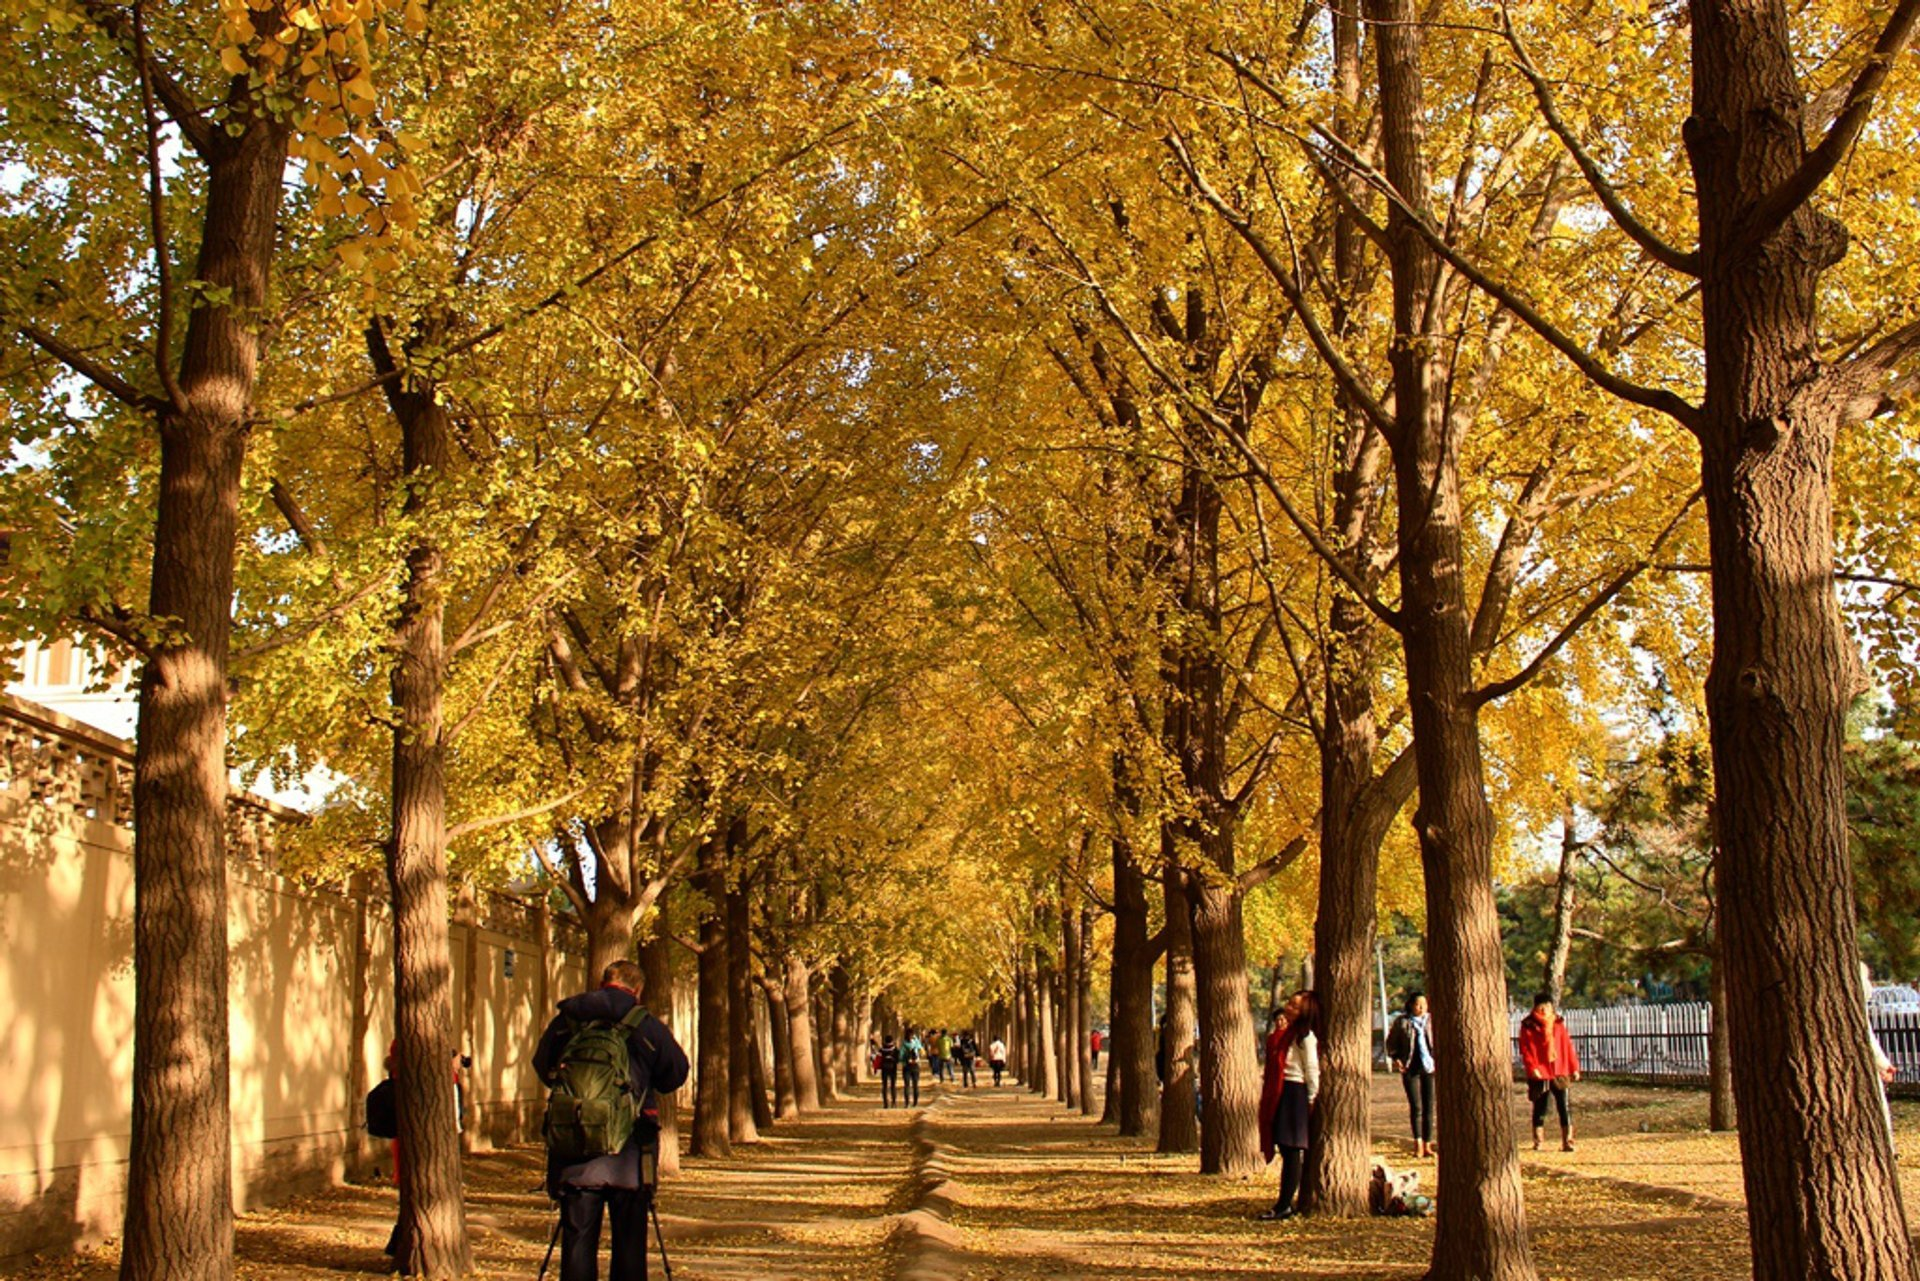 Ginkgo Avenues in Beijing 2020 - Best Time